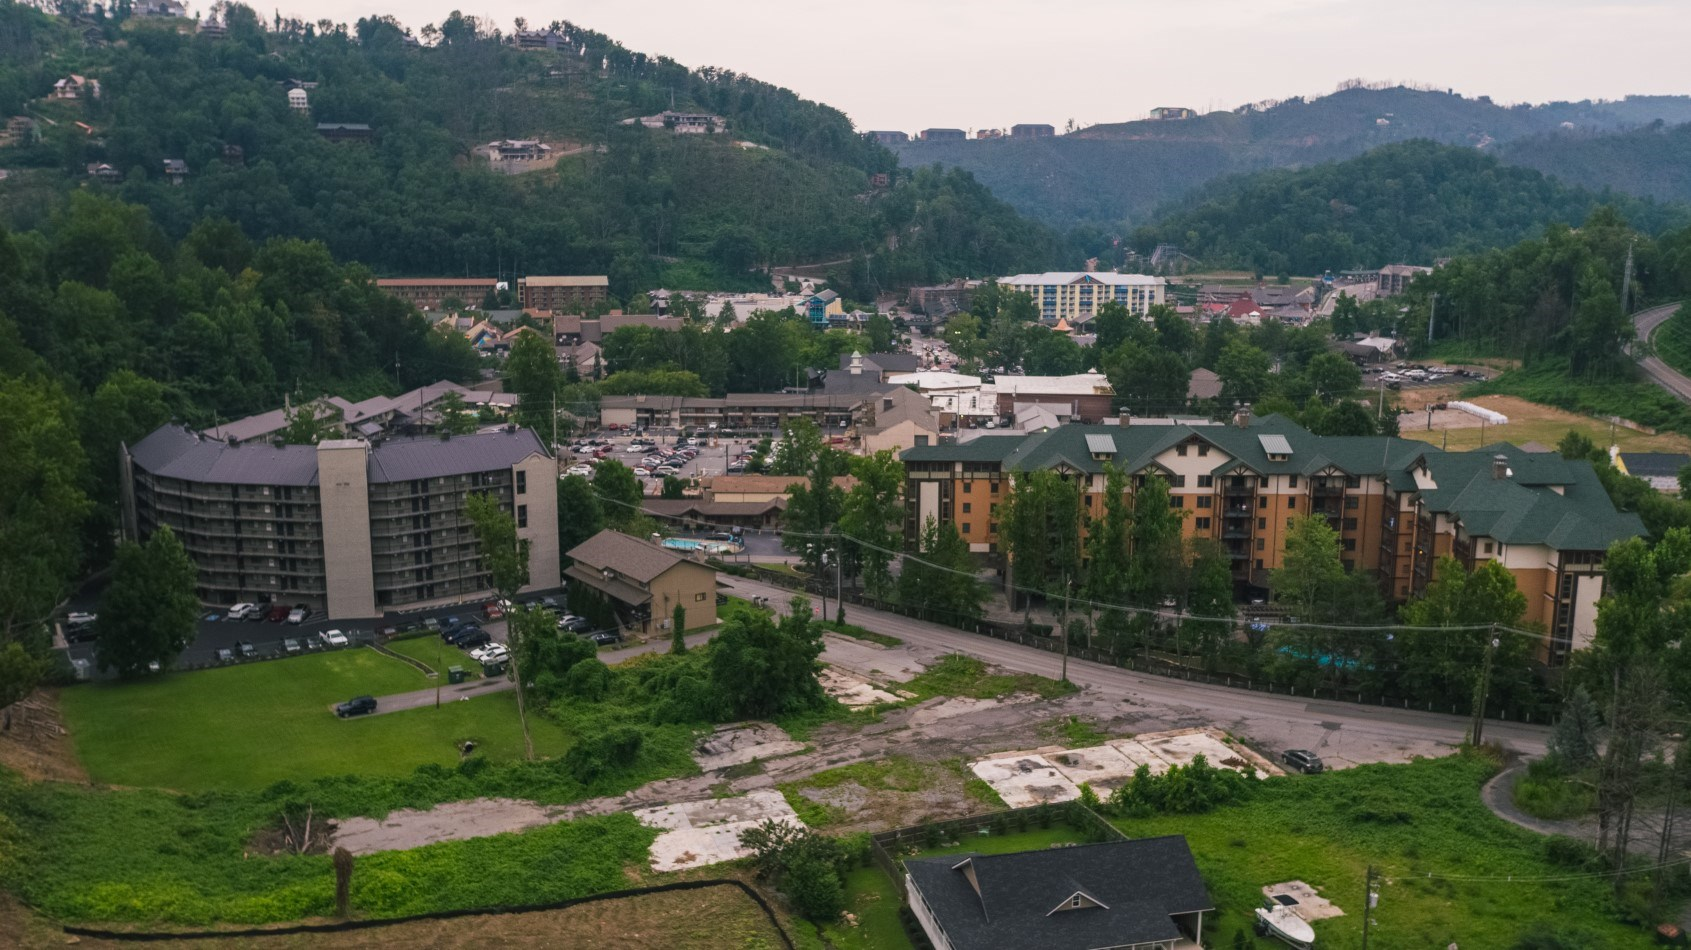 Commercial Building Lot For Auction In Gatlinburg TN